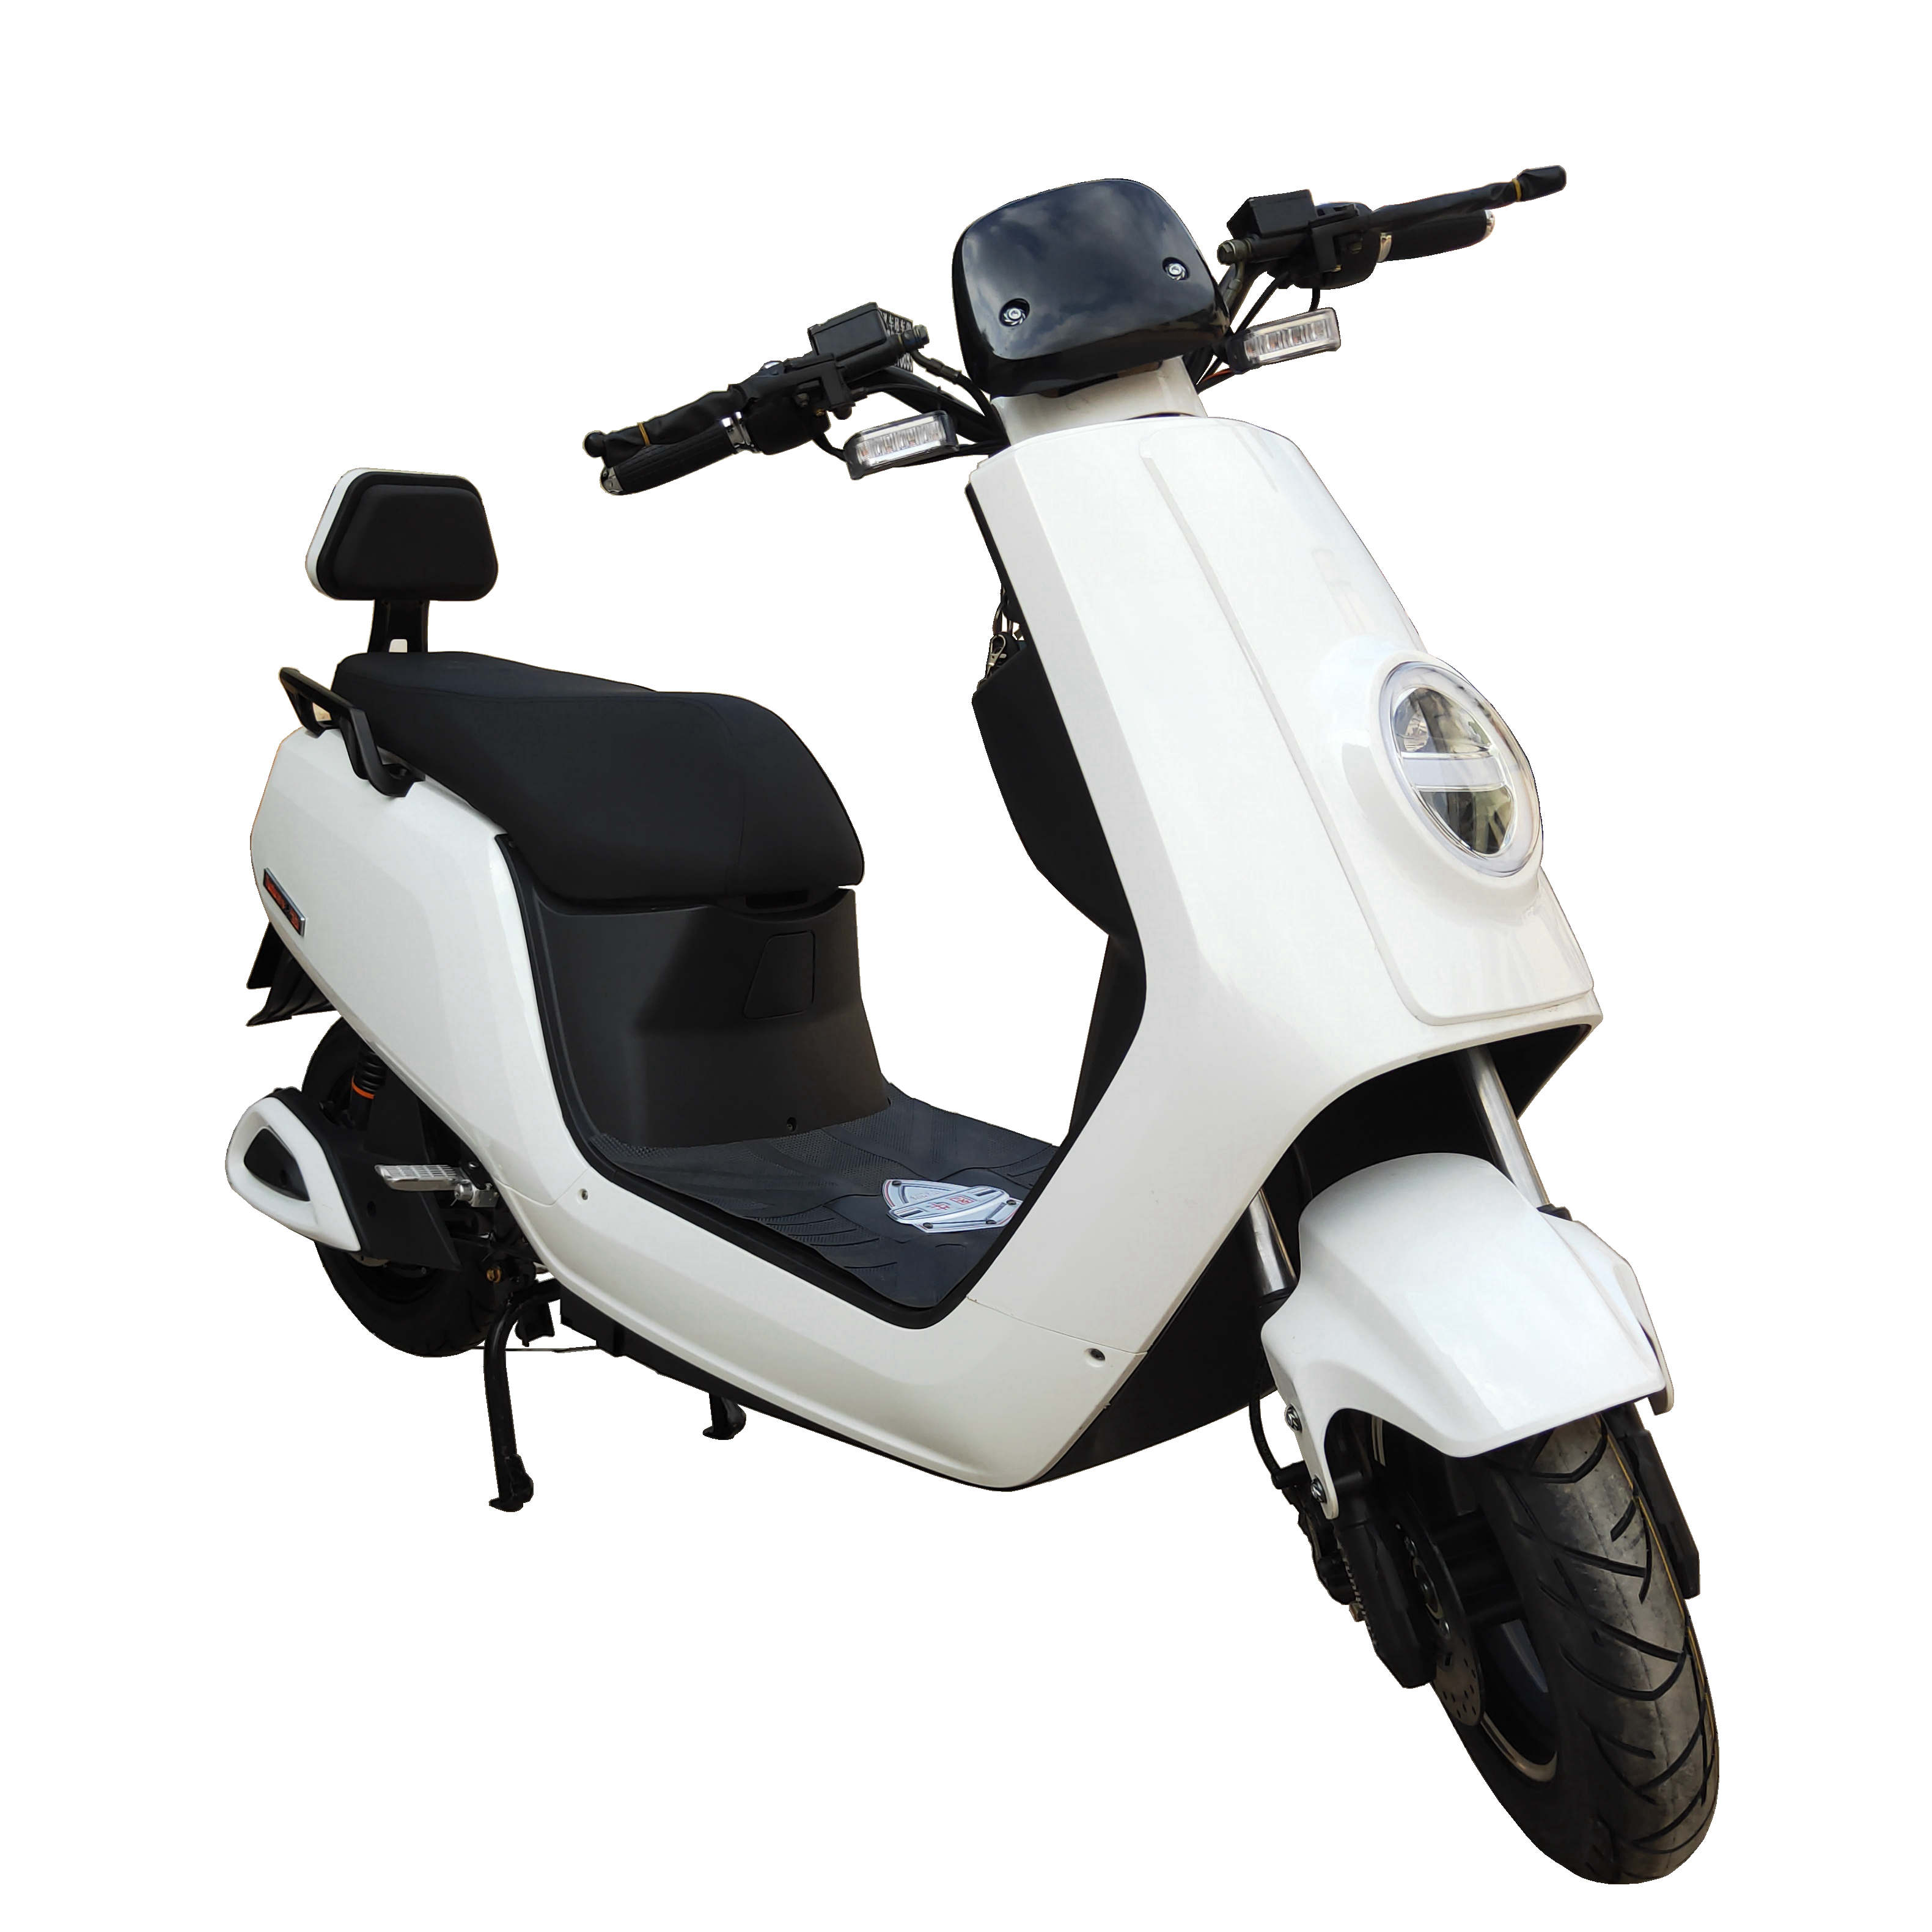 New arrival fancy electric scooter motorcycle with backrest for ladies